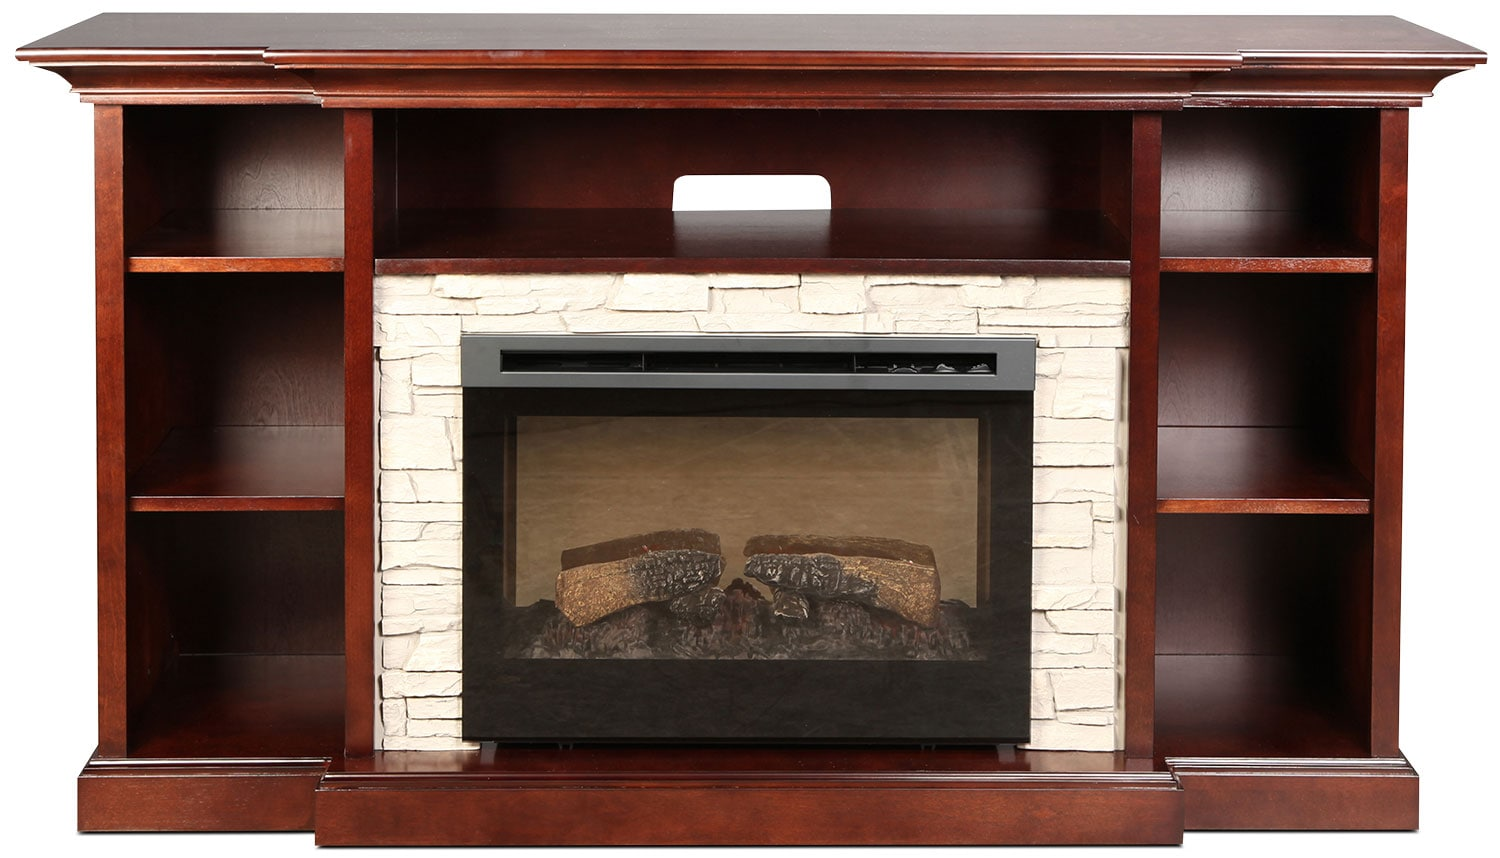 Courtyard Fireplace TV Stand - Espresso